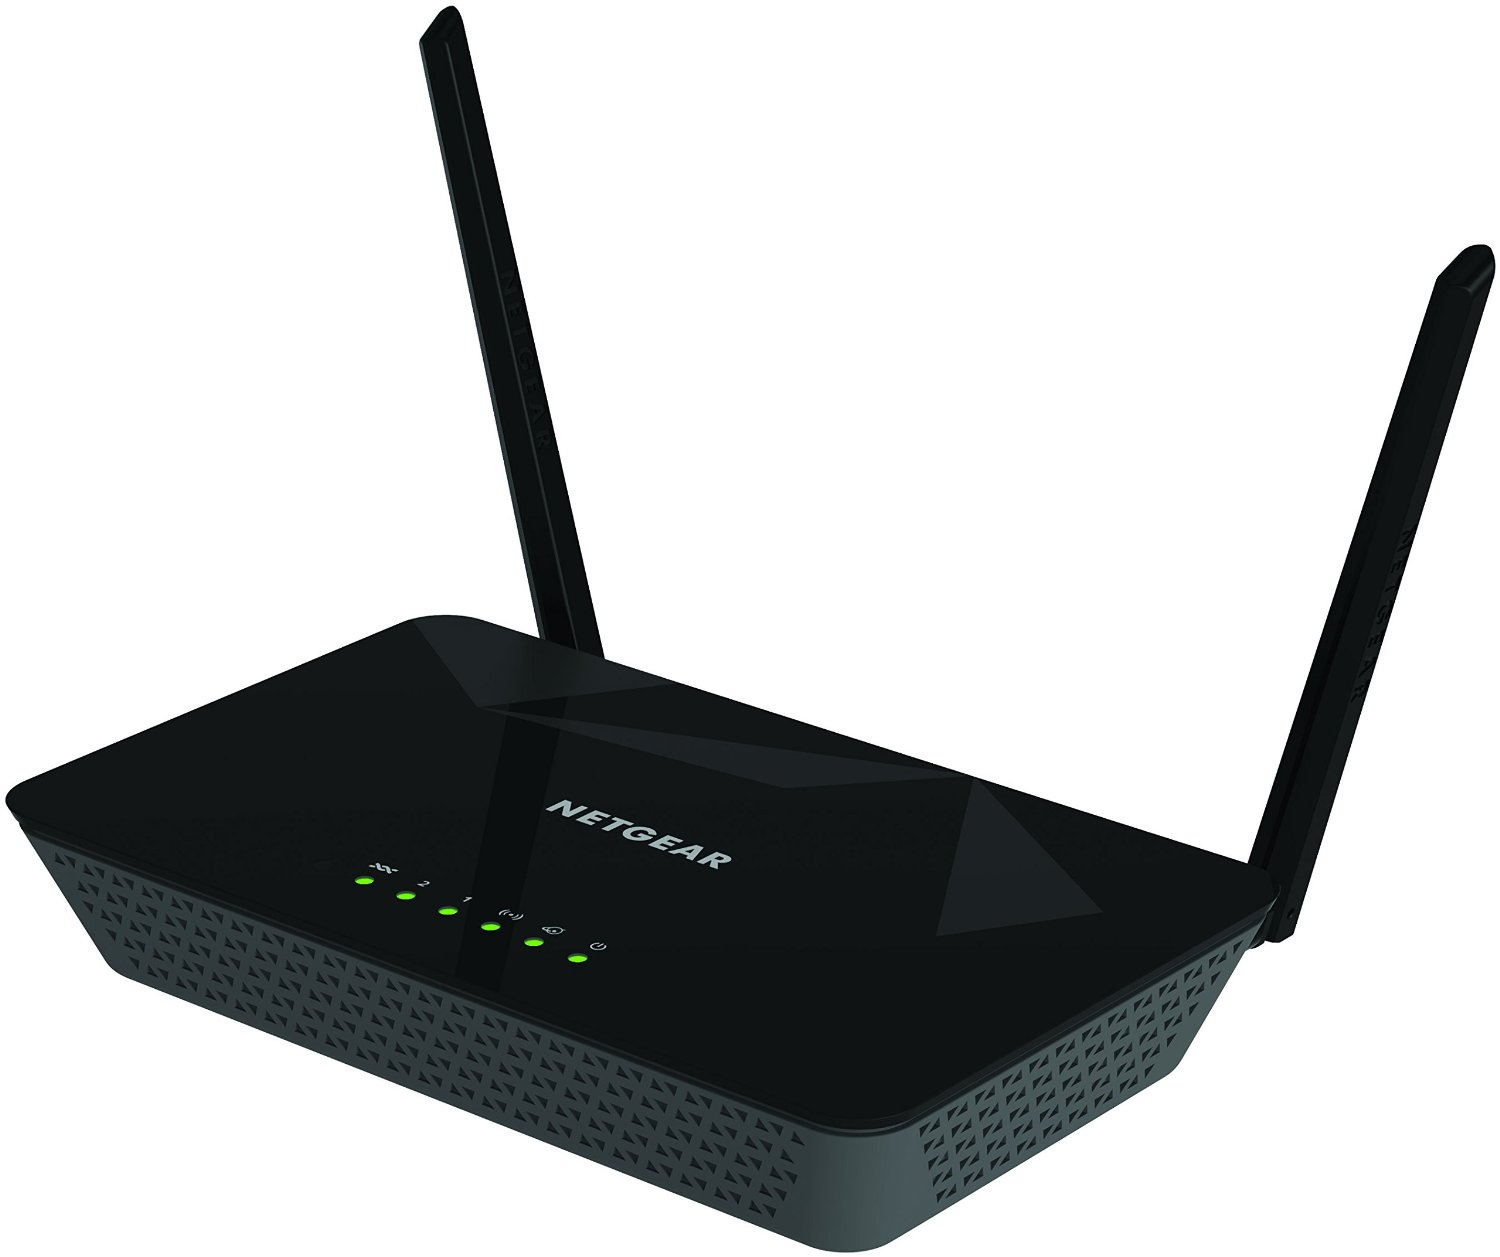 netgear d1500 n300 wireless adsl2 modem router nbn ready d1500. Black Bedroom Furniture Sets. Home Design Ideas